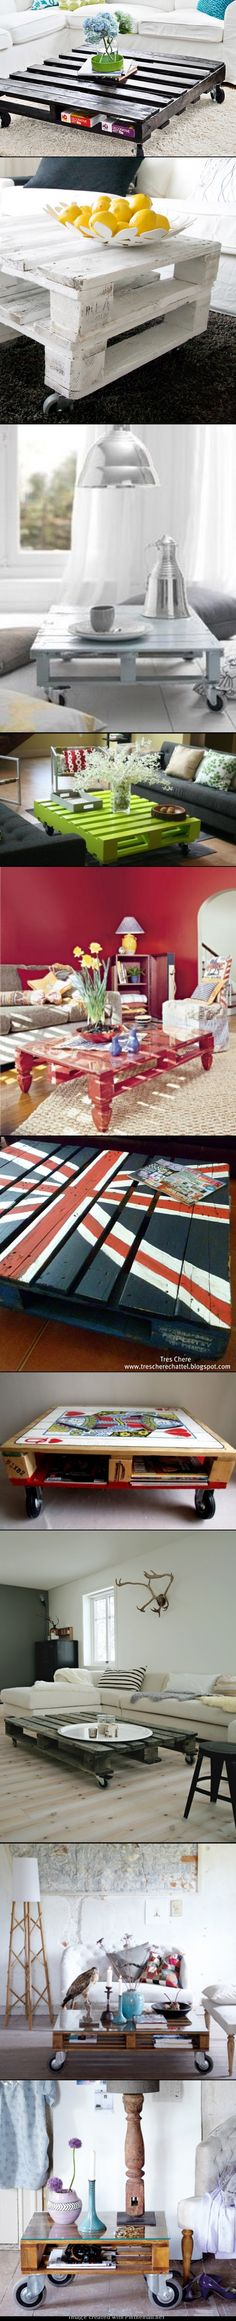 DIY-Home-Decor: TOP-10 Home Decor DIY PALLET COFFEE TABLES